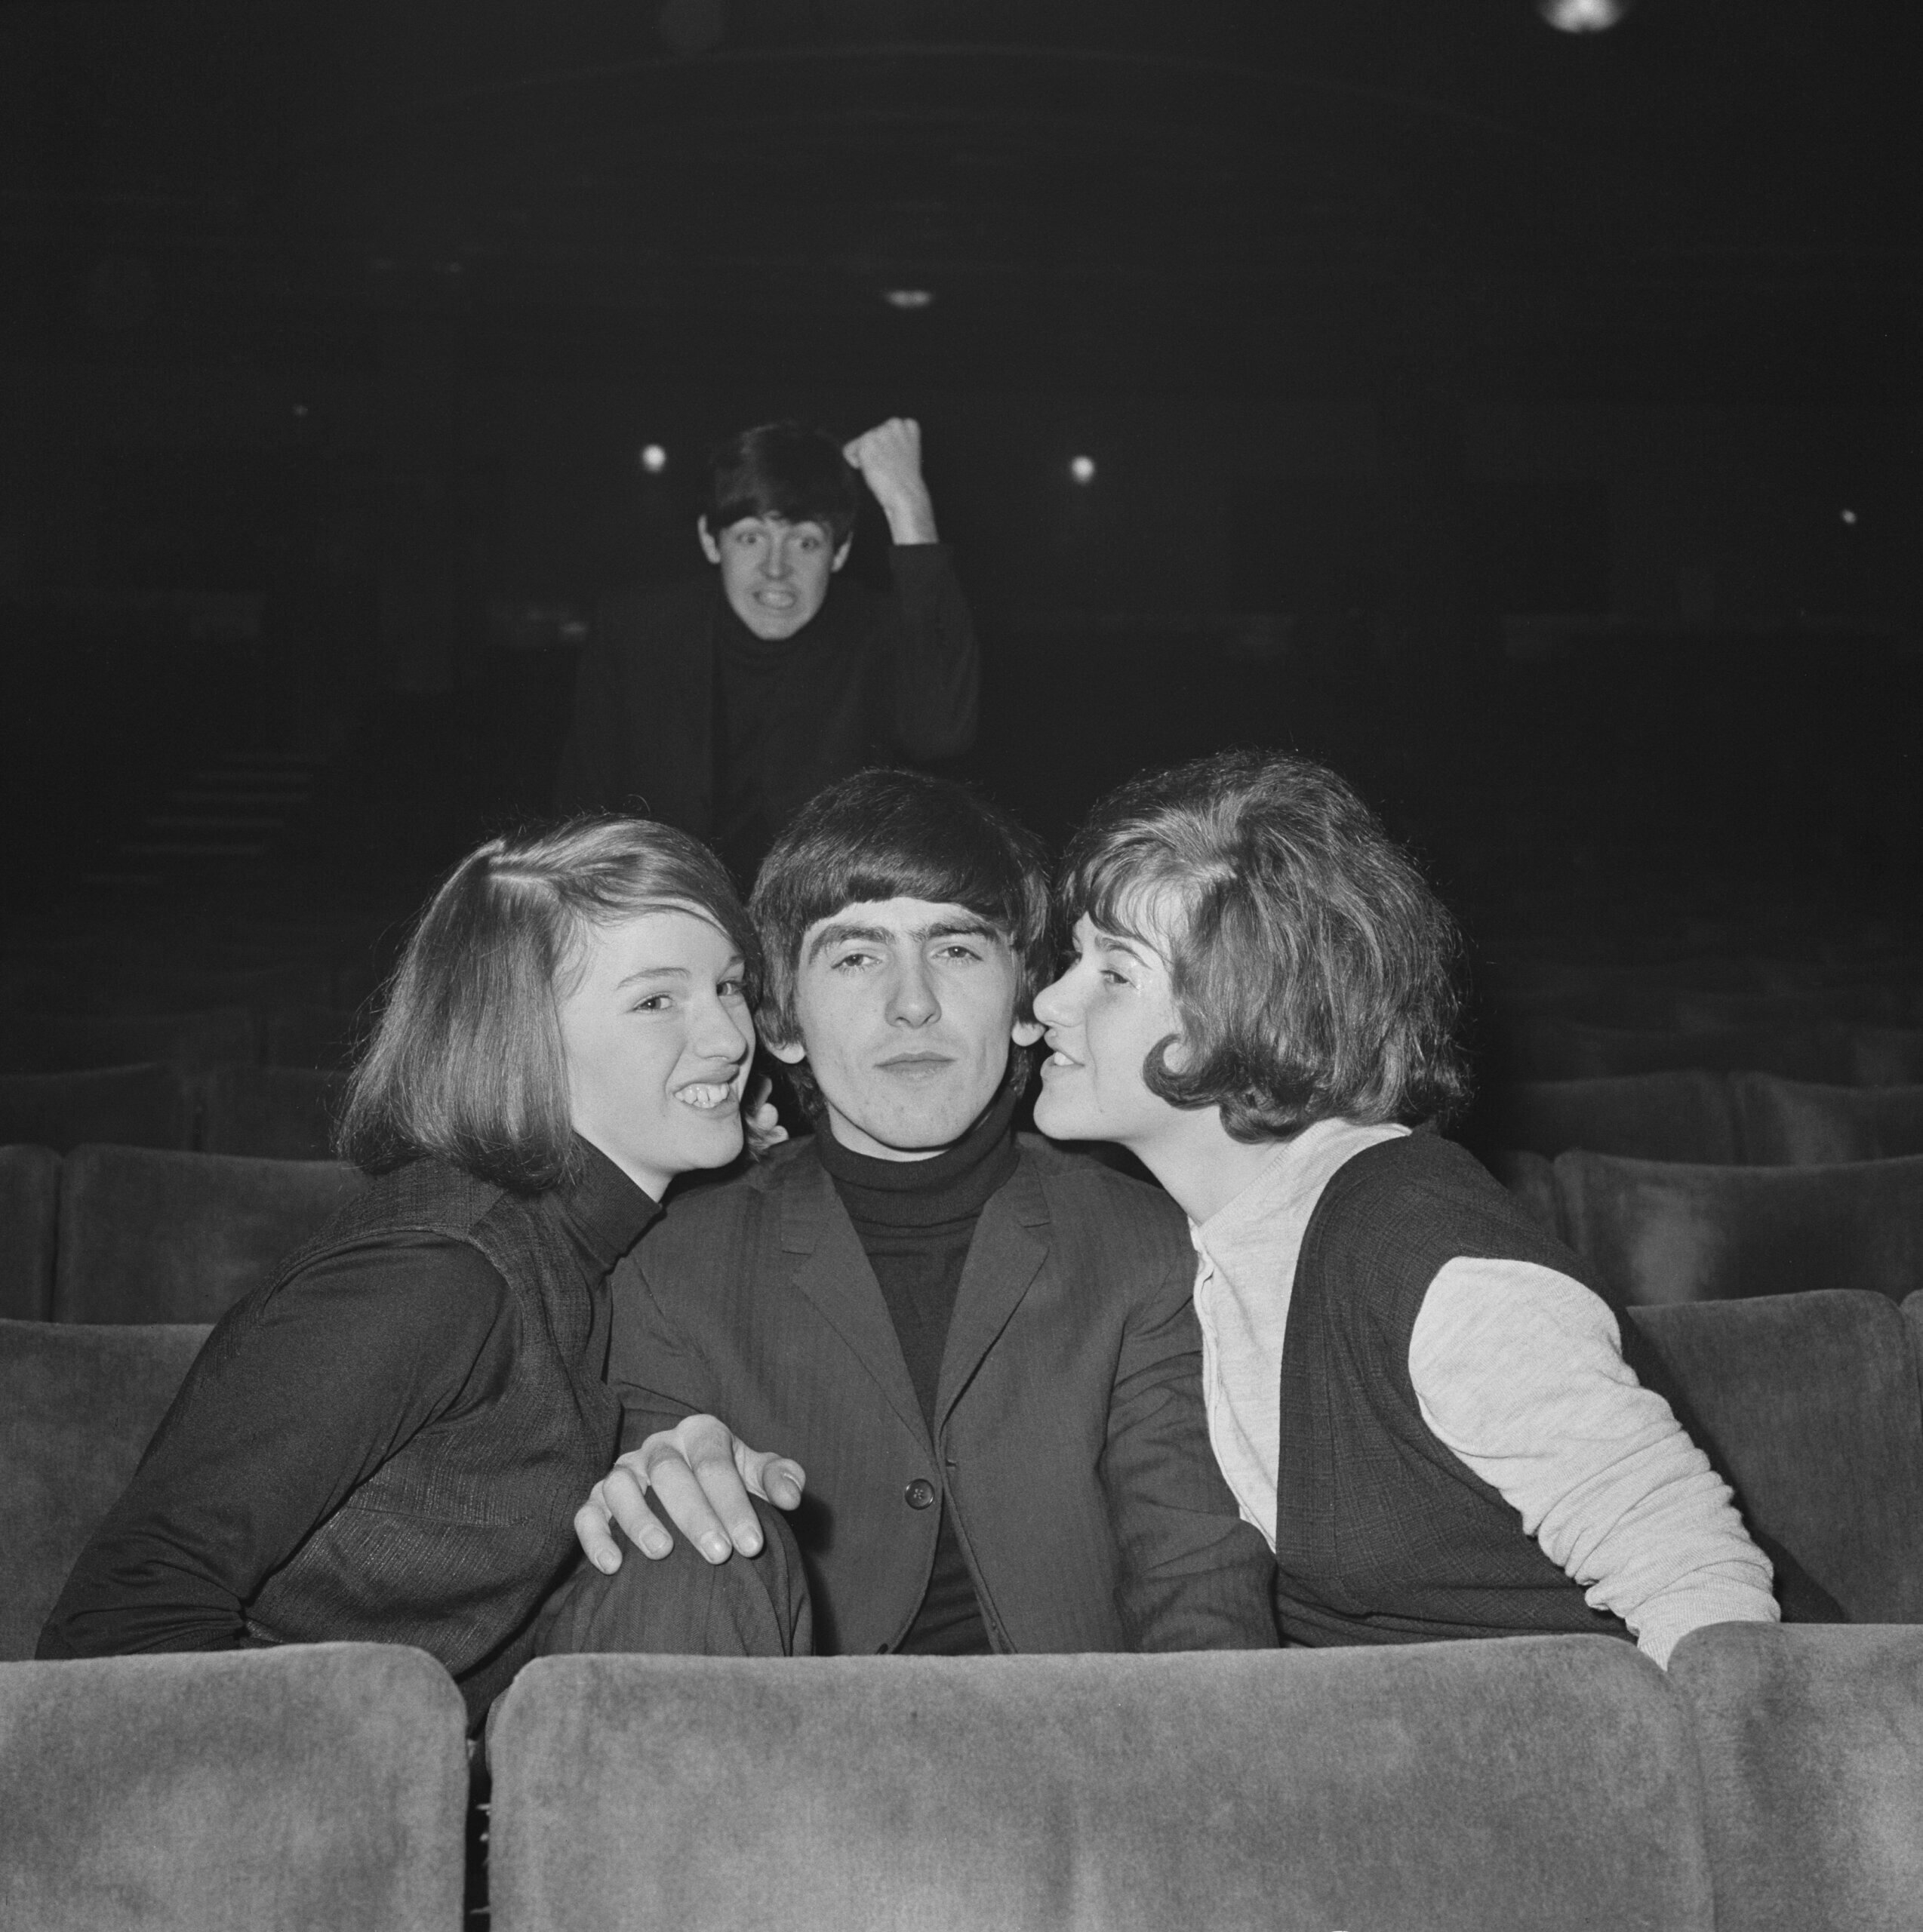 <i>Favourite Beatle</i>, Gaumont Cinema, Doncaster, December 10, 1963. Photo Mark and Colleen Hayward / Getty Images